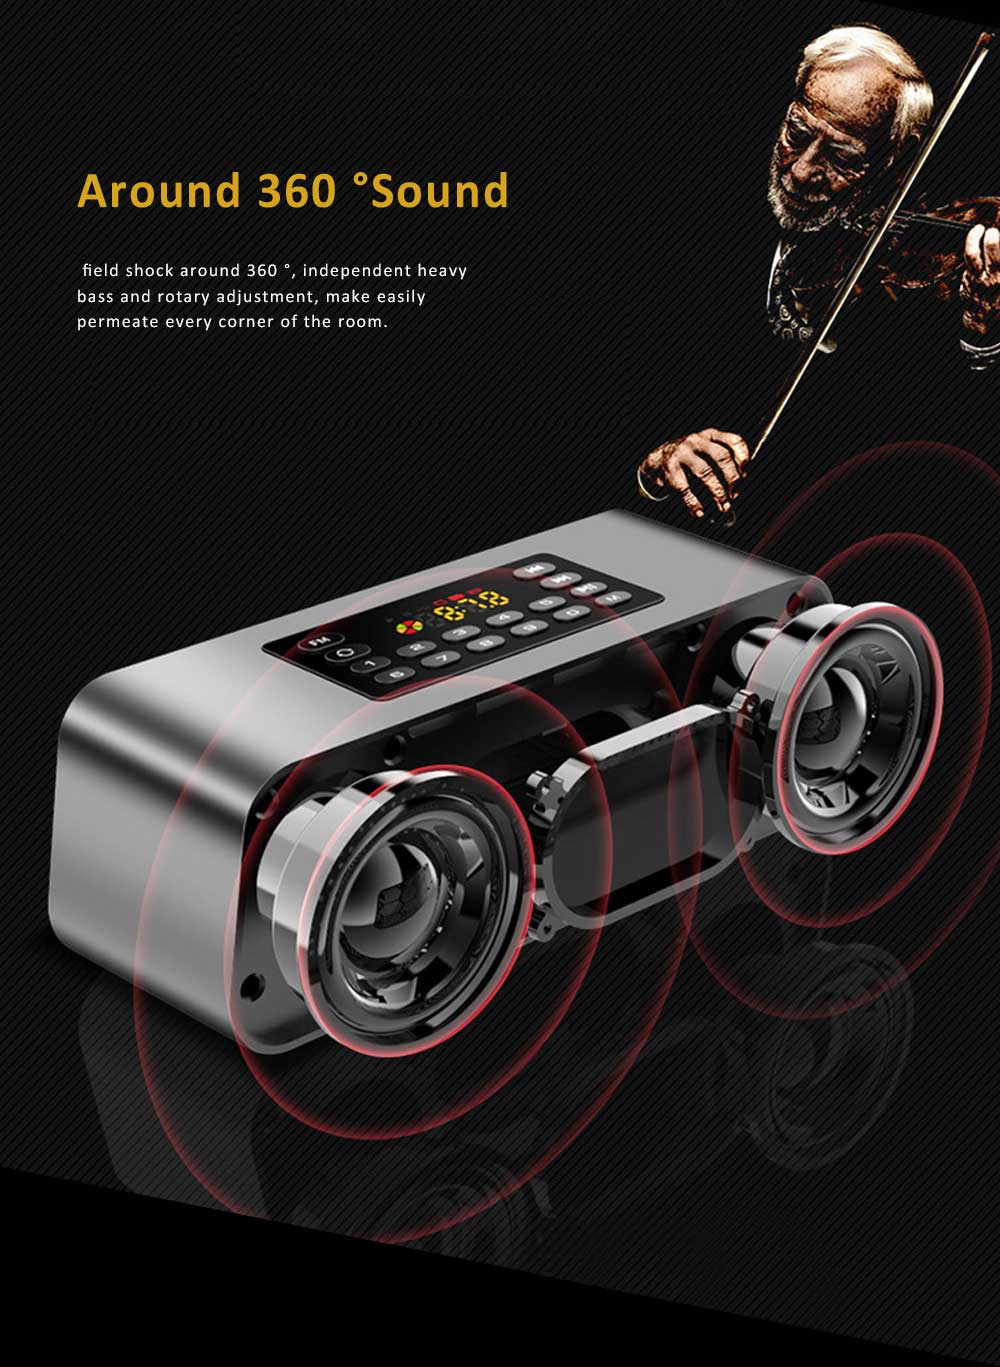 Wireless Bluetooth 5.0 Speaker with Dual Speakers, Bass Card Speaker Support Ultra-long Battery Life for Apps, Computer, Tablets, Phones 5